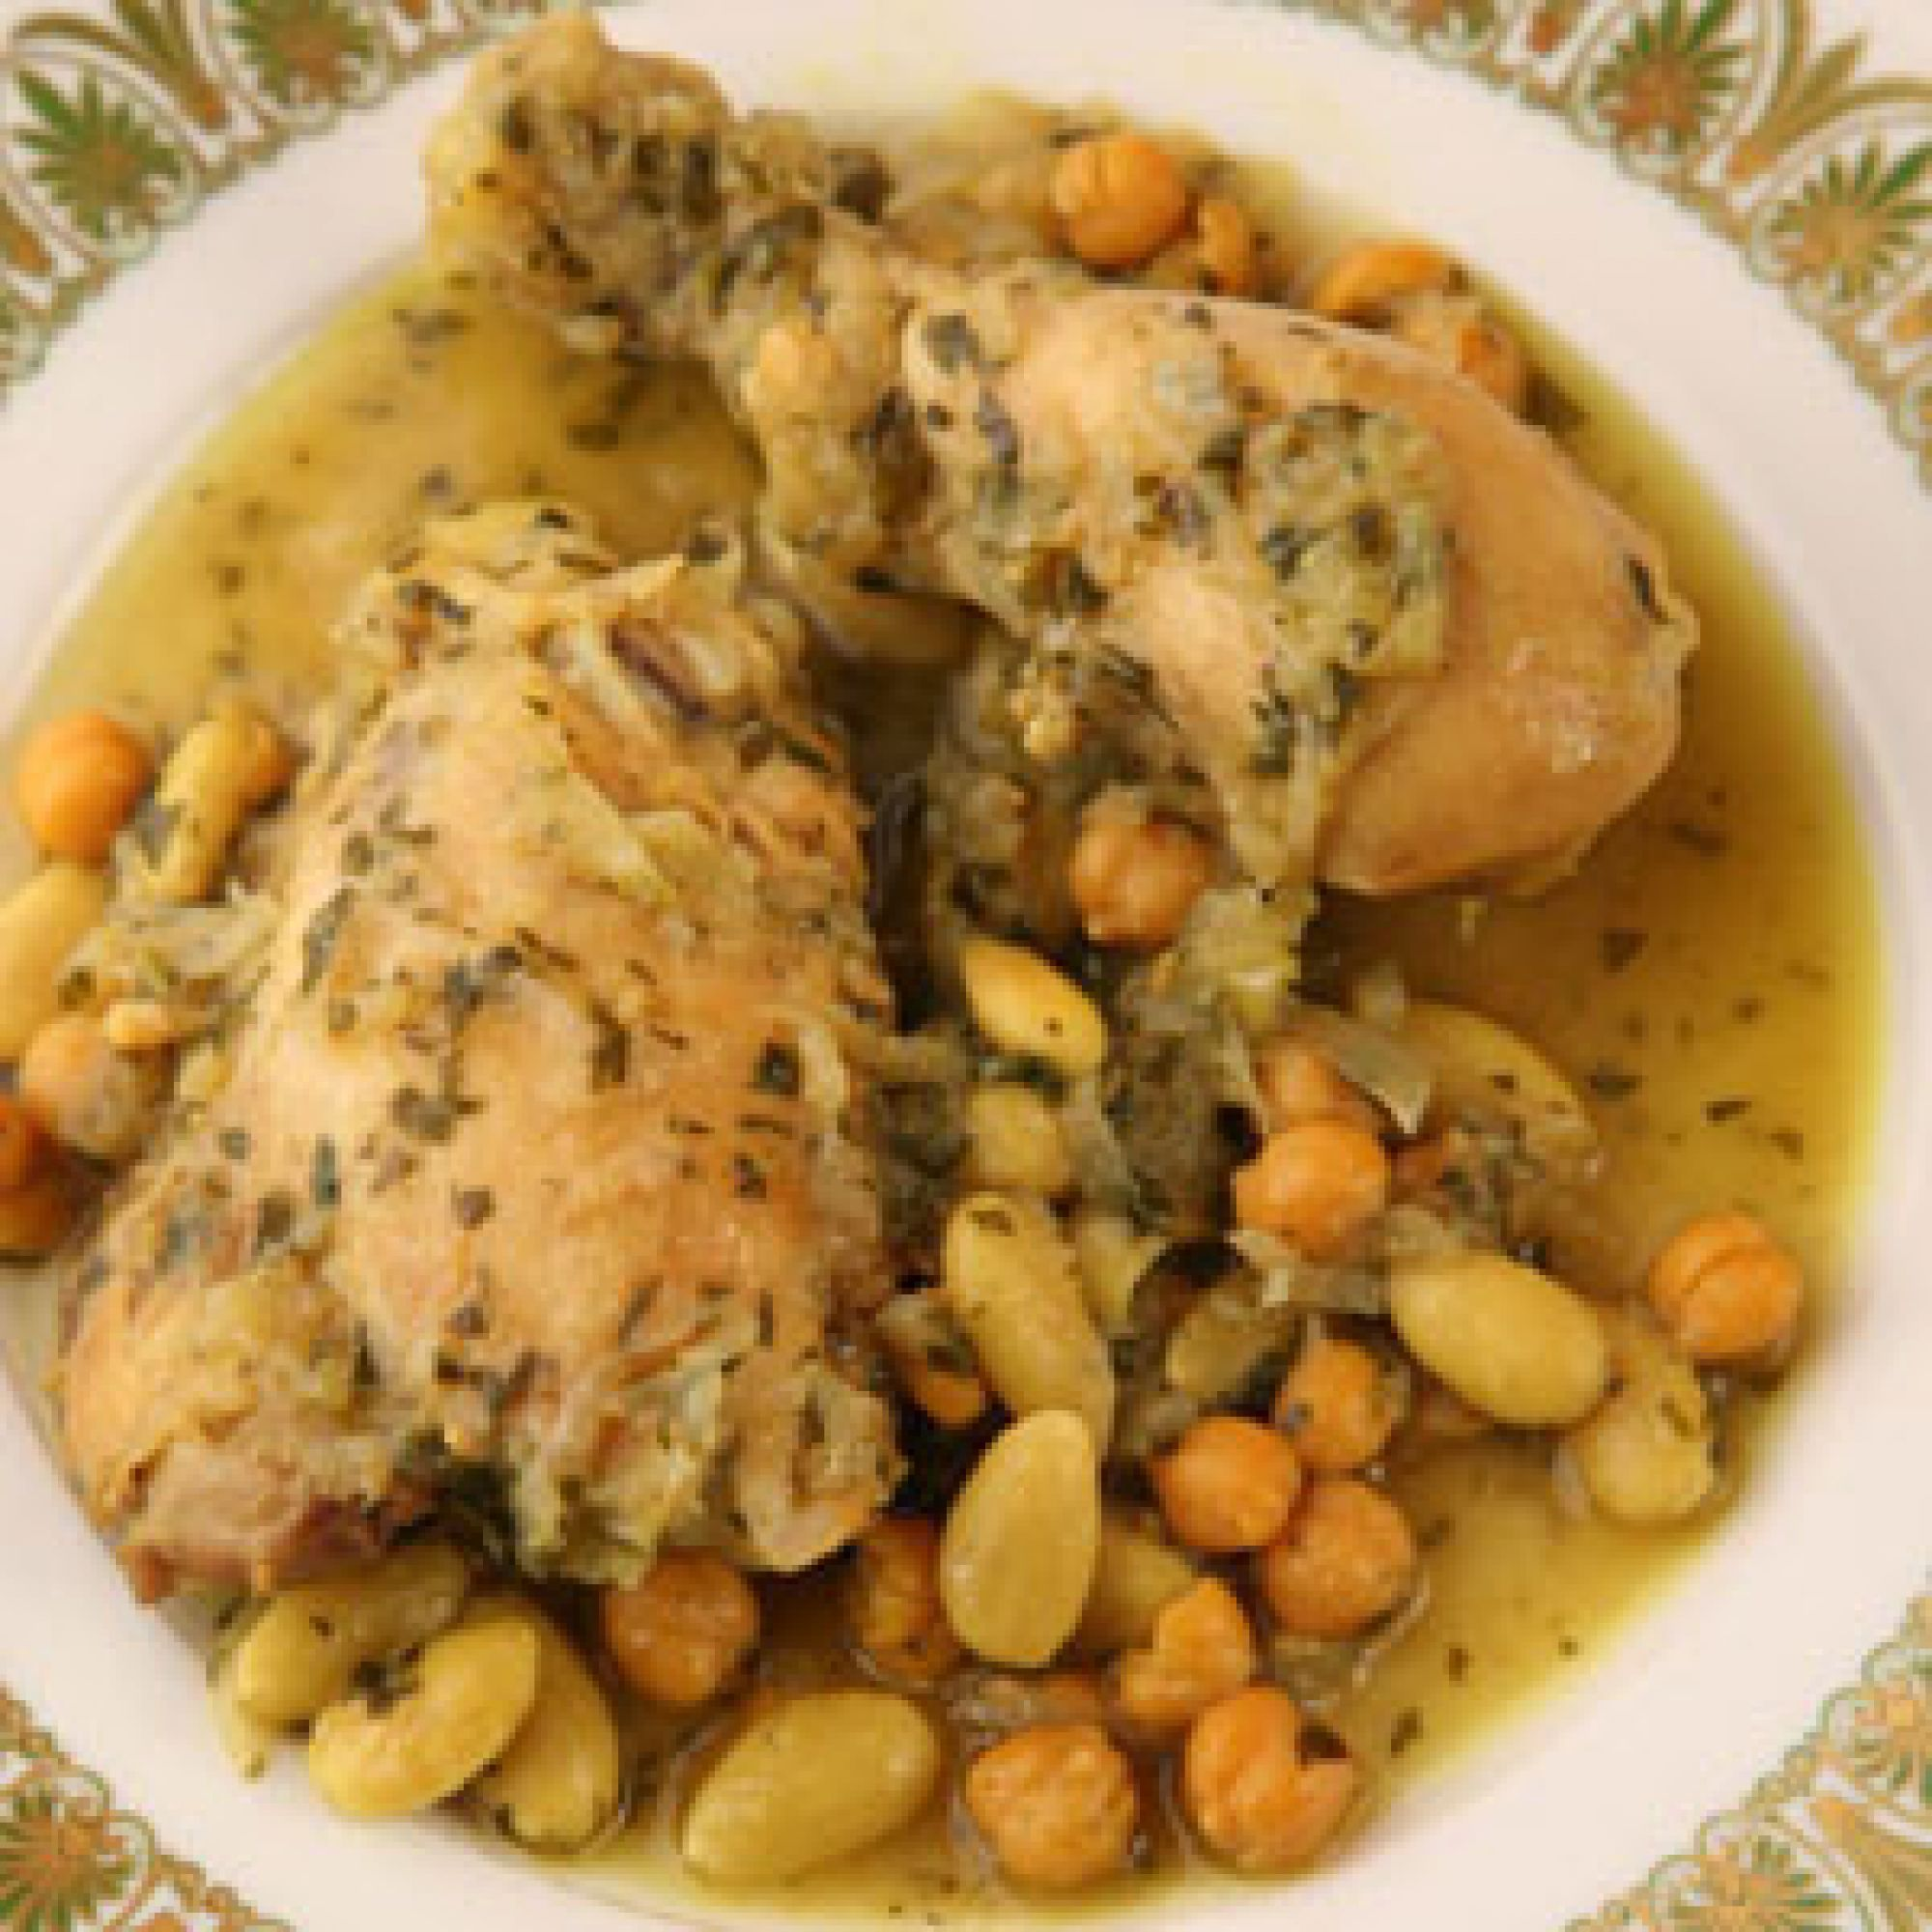 Moroccan chicken stew with almonds and chickpeas djej kdra touimiya moroccan chicken stew with almonds and chickpeas djej kdra touimiya chicken tagine recipe forumfinder Images